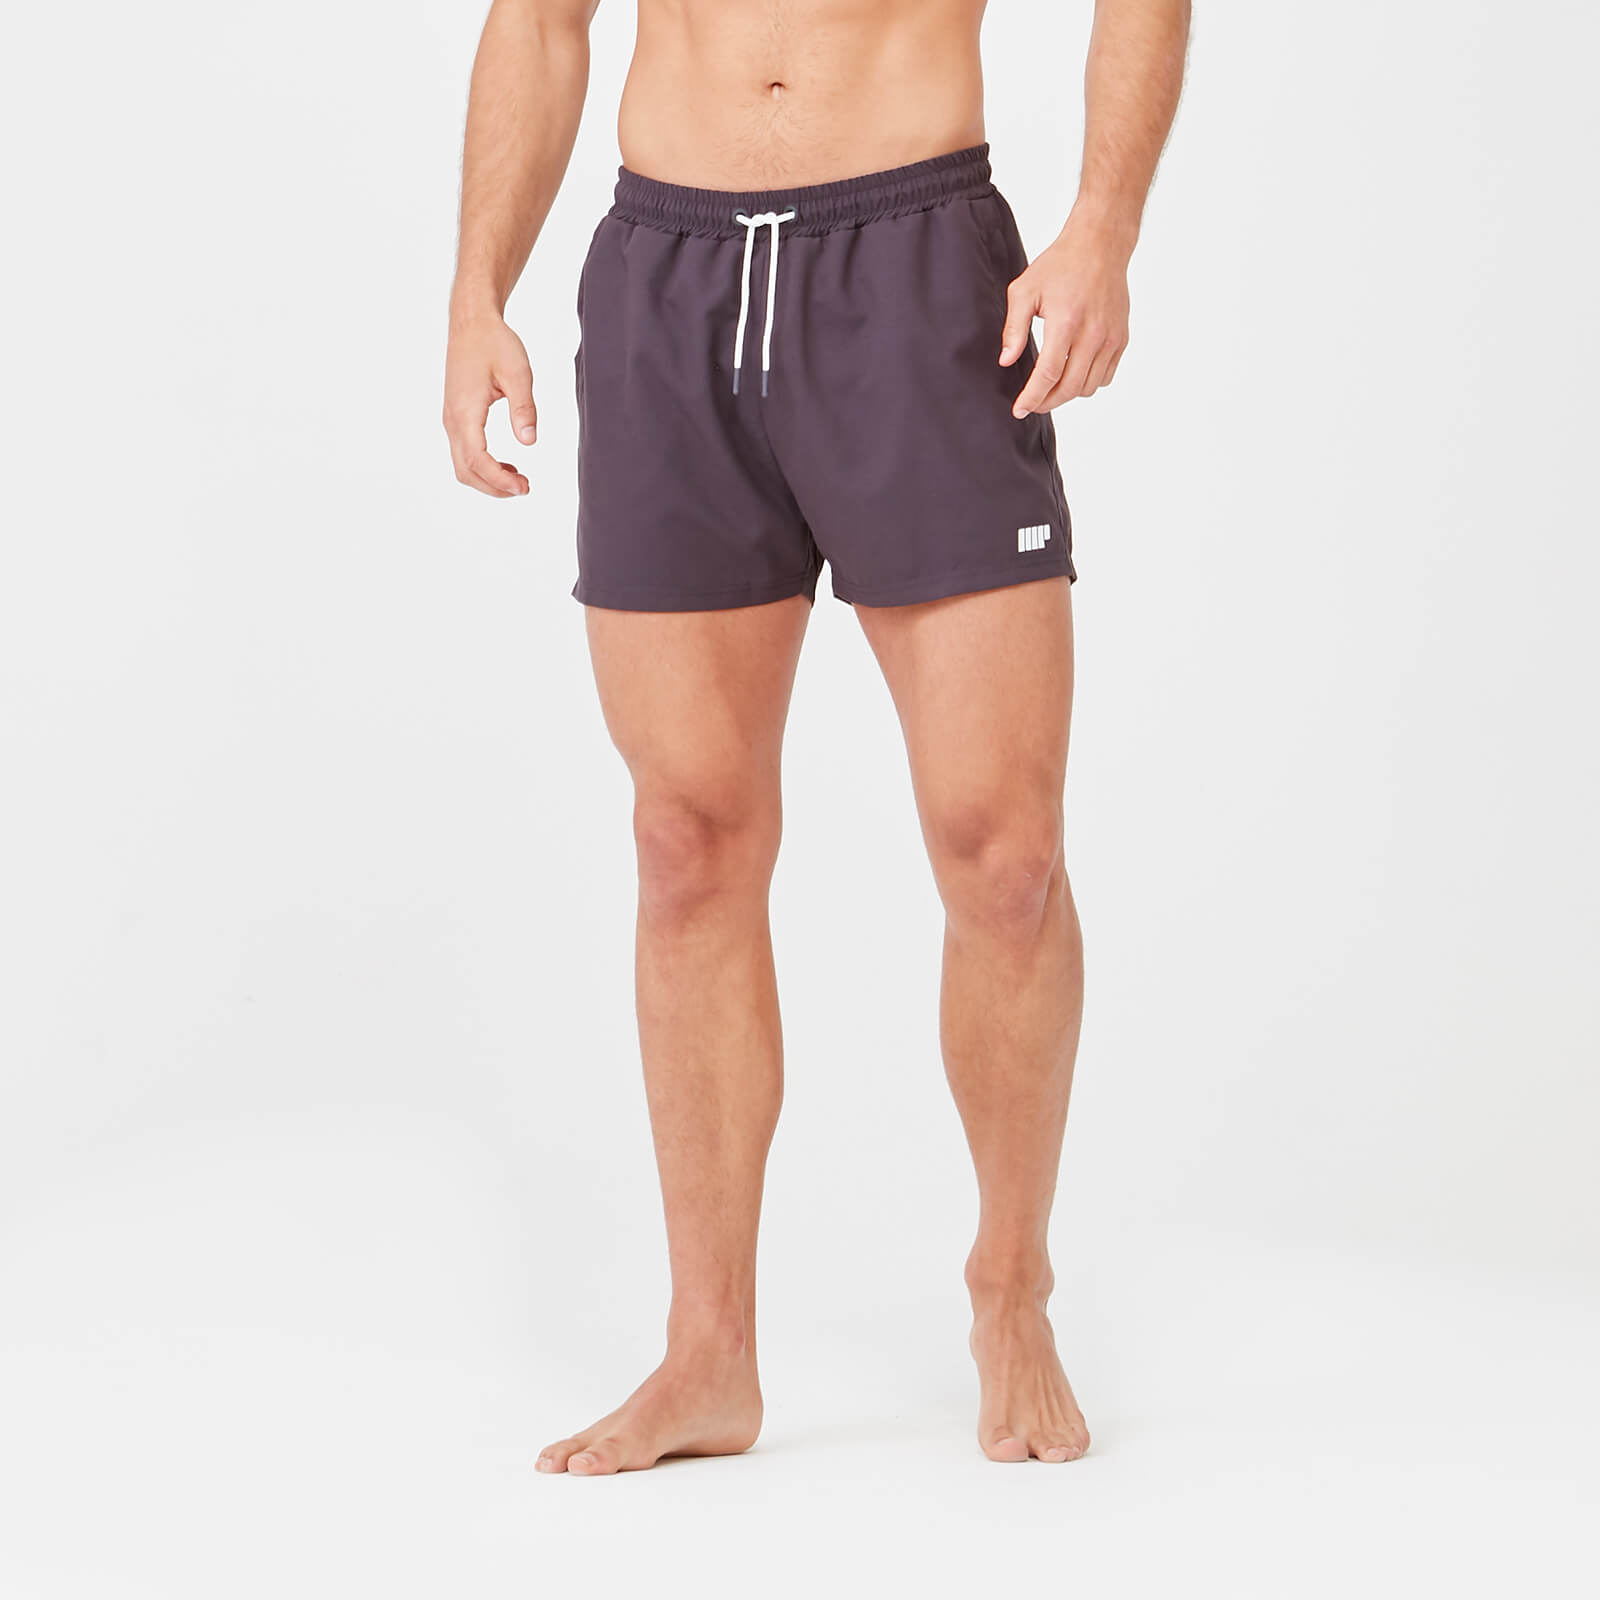 Short Length Swim Shorts - Slate - XS